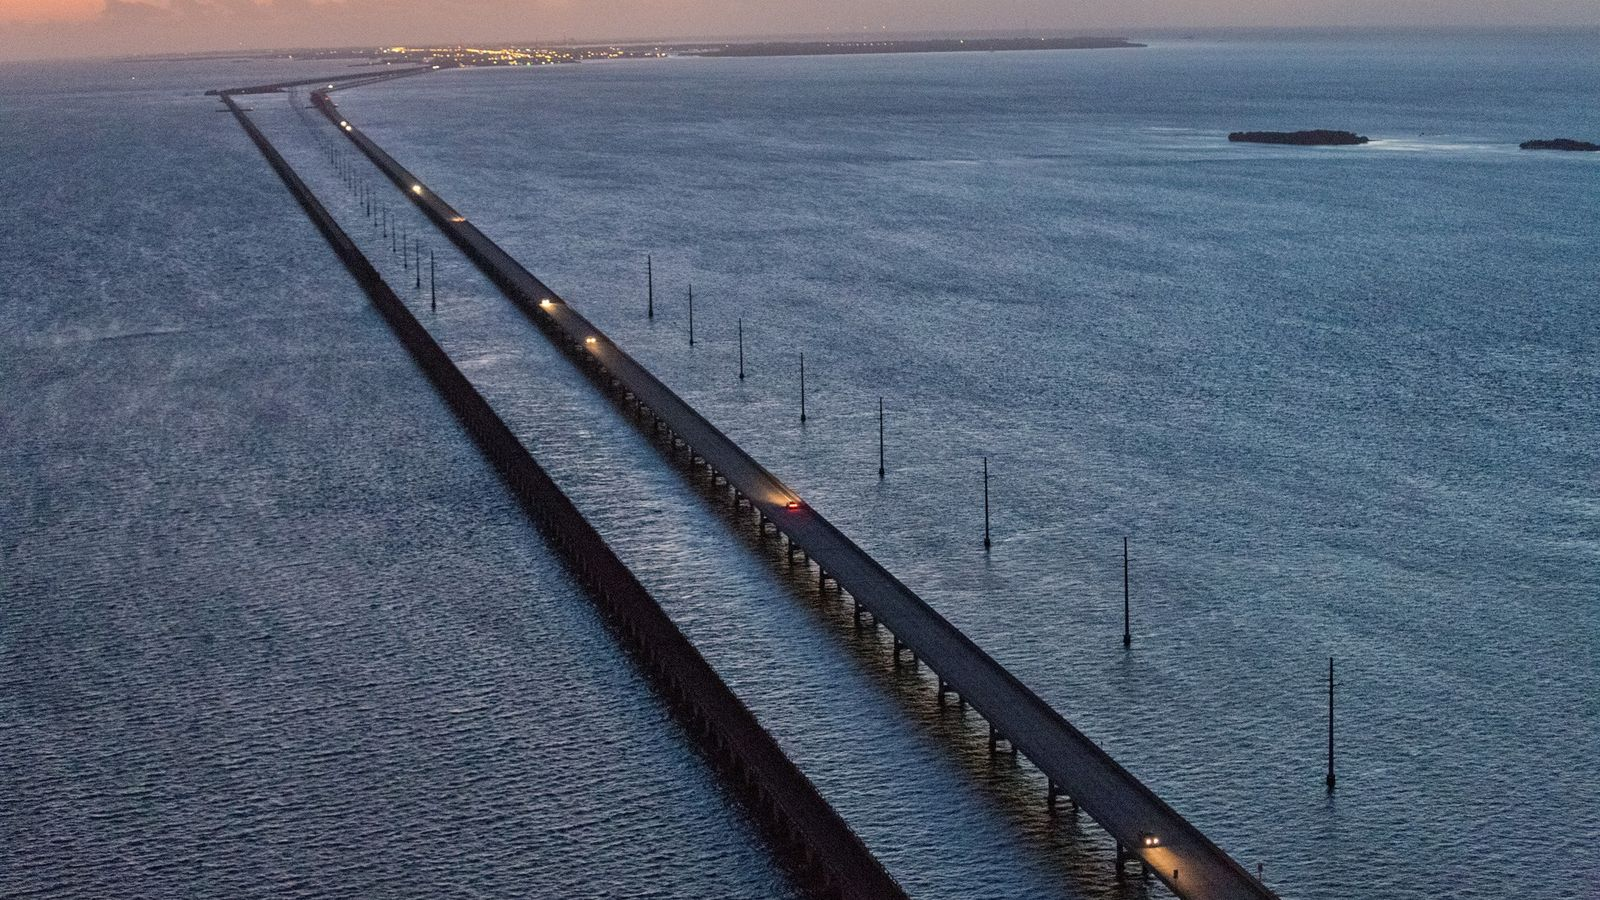 Six Mile Bridge, which leads from Marathon Key toward Key West, is what the South Florida ...